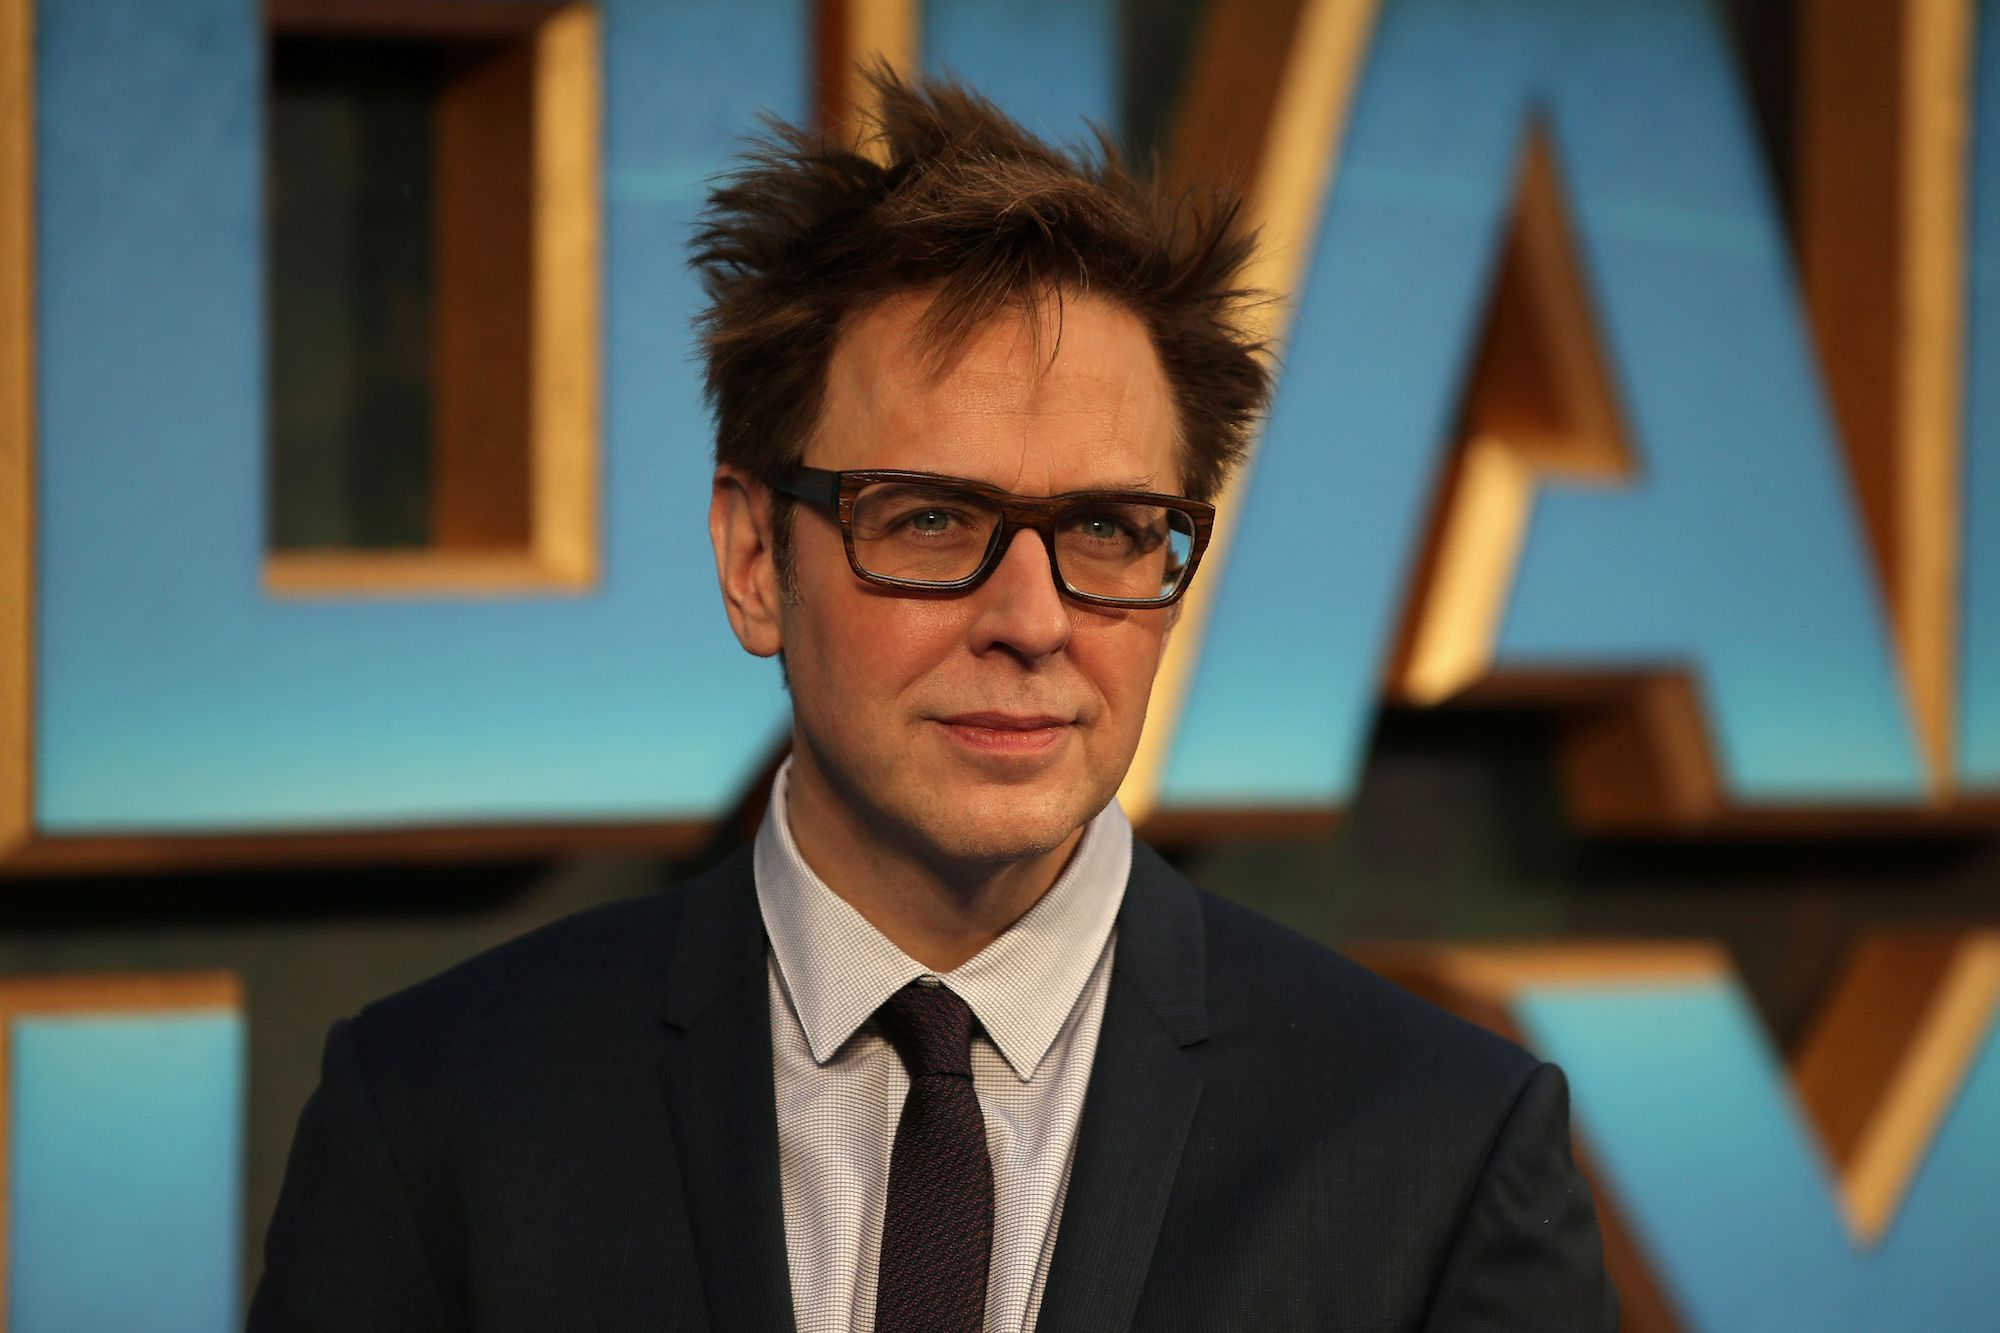 James Gunn at the European Gala screening of 'Guardians of the Galaxy Vol. 2' in London on April 24, 2017.